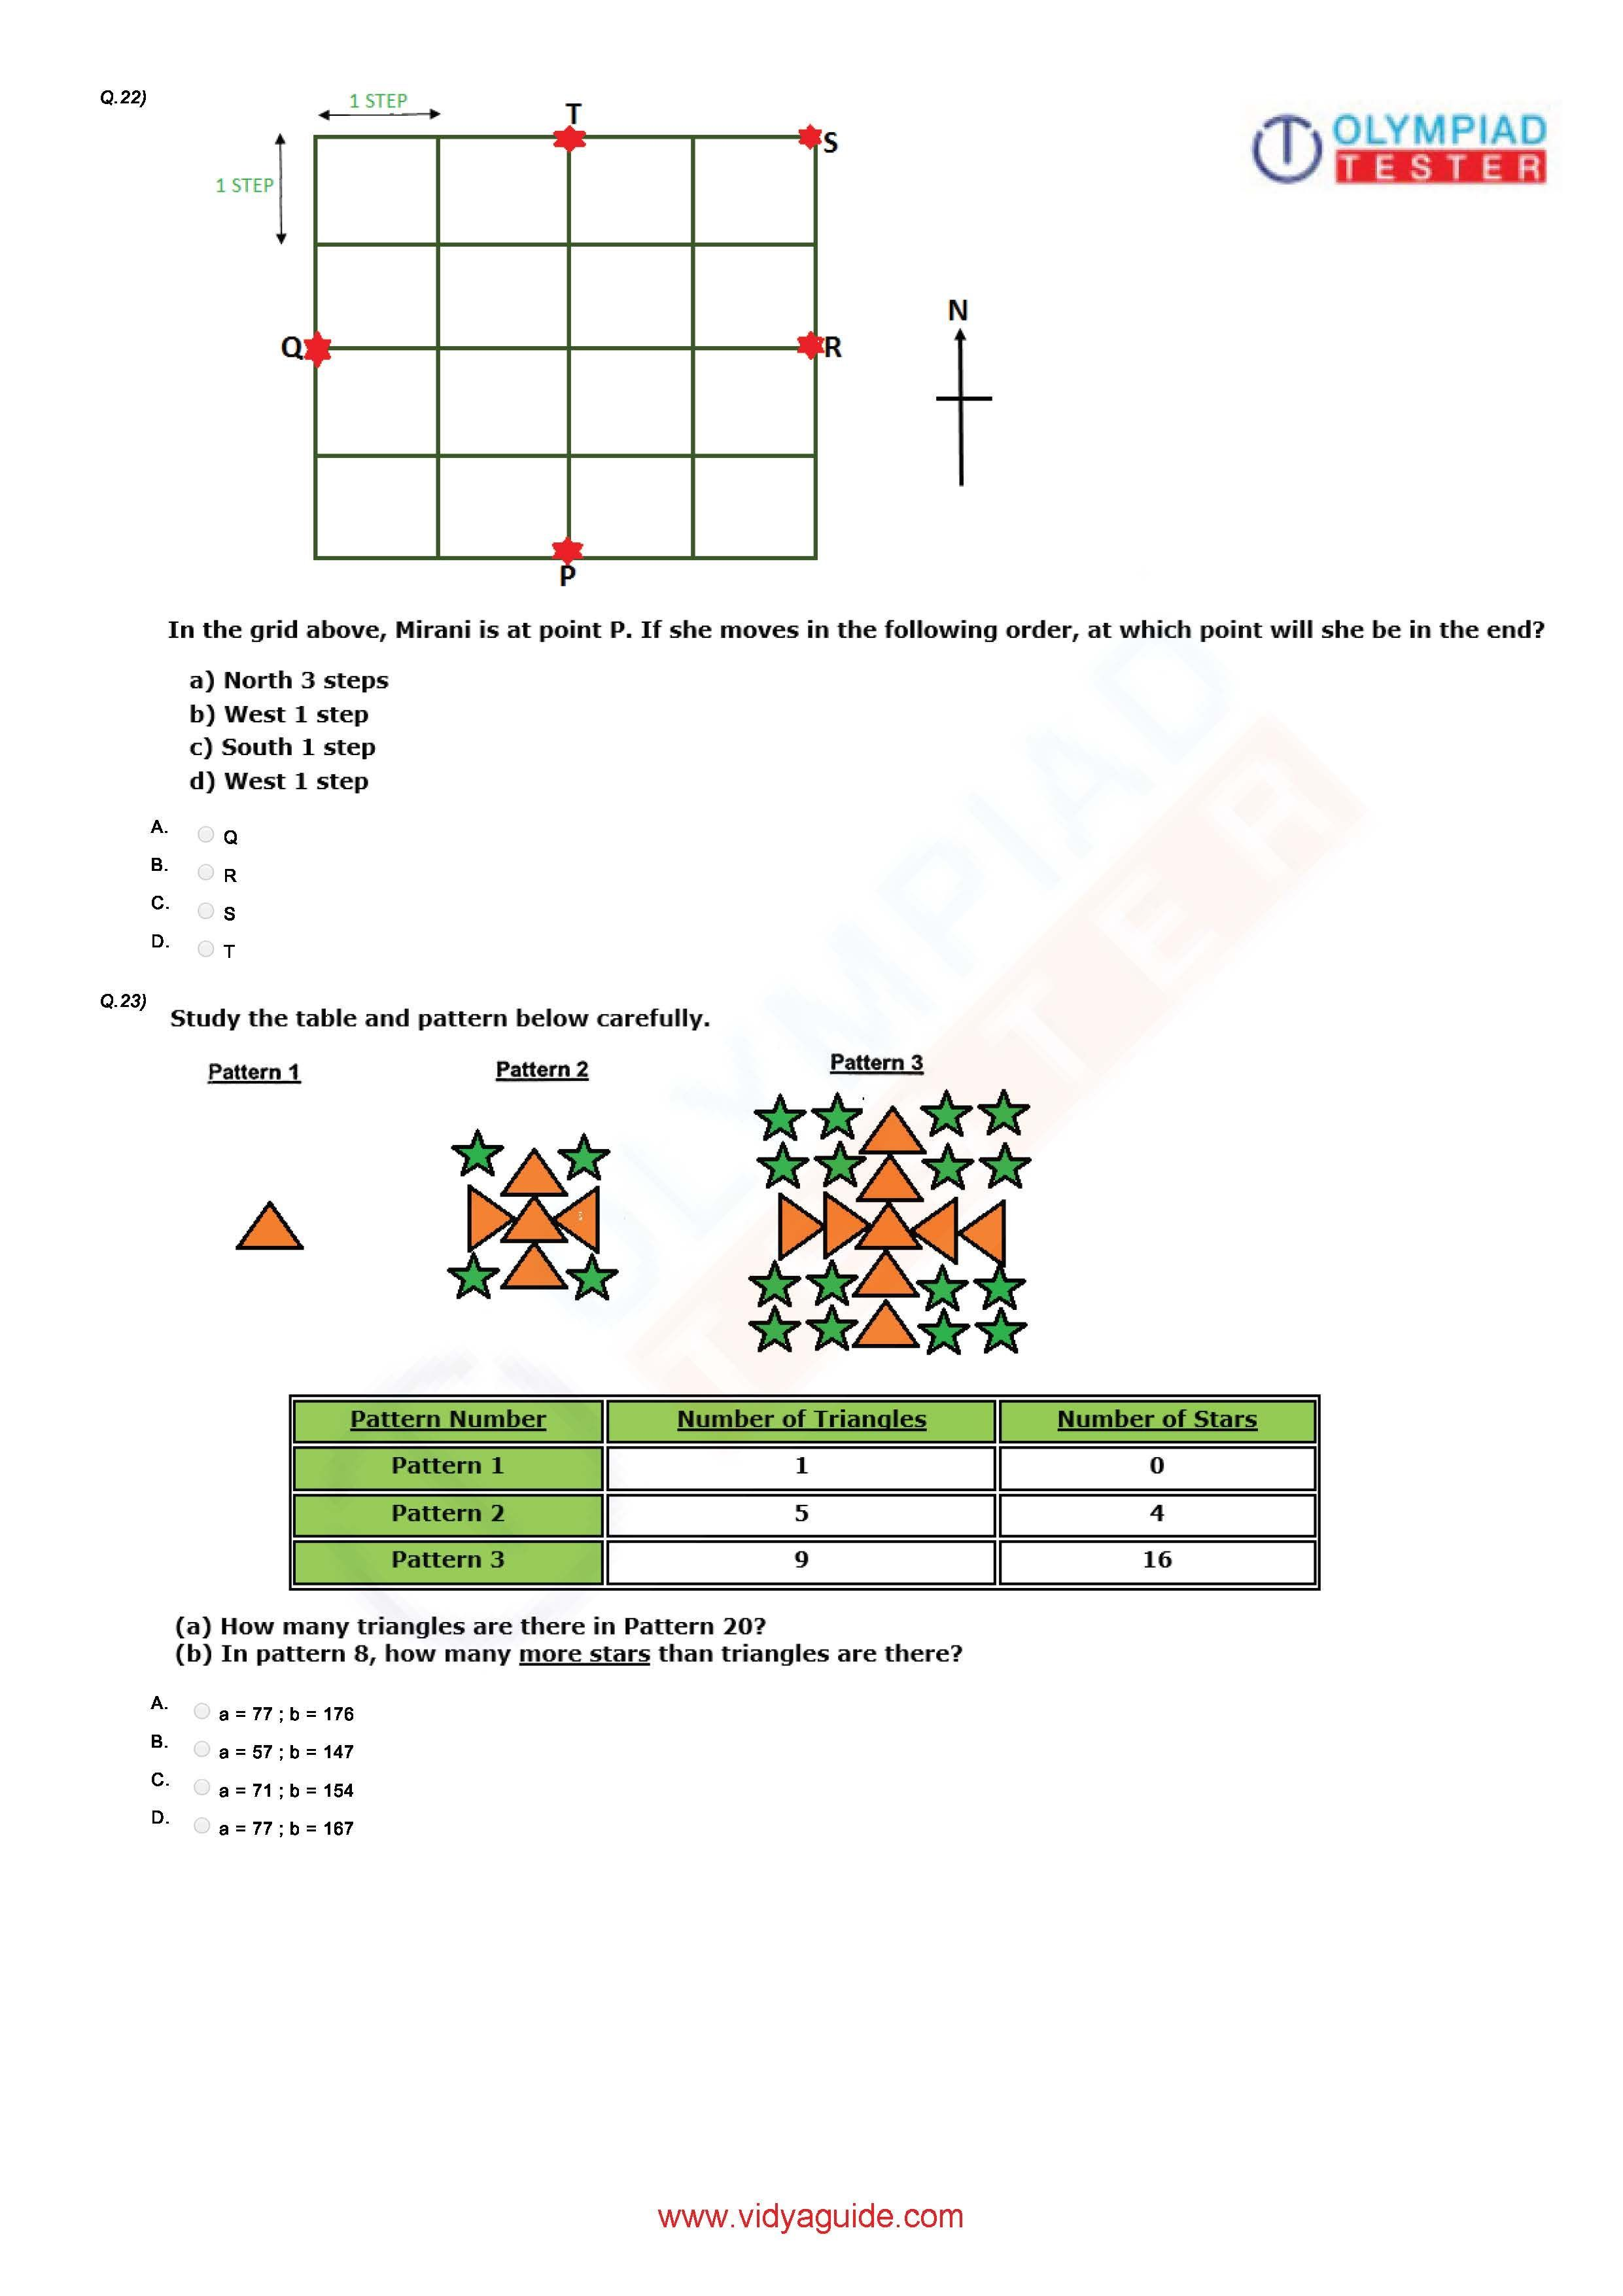 Download Printable Grade 5 Maths Worksheets Or Take These Tests Online At Vidyaguide Math Olympiad Math Sample Question Paper